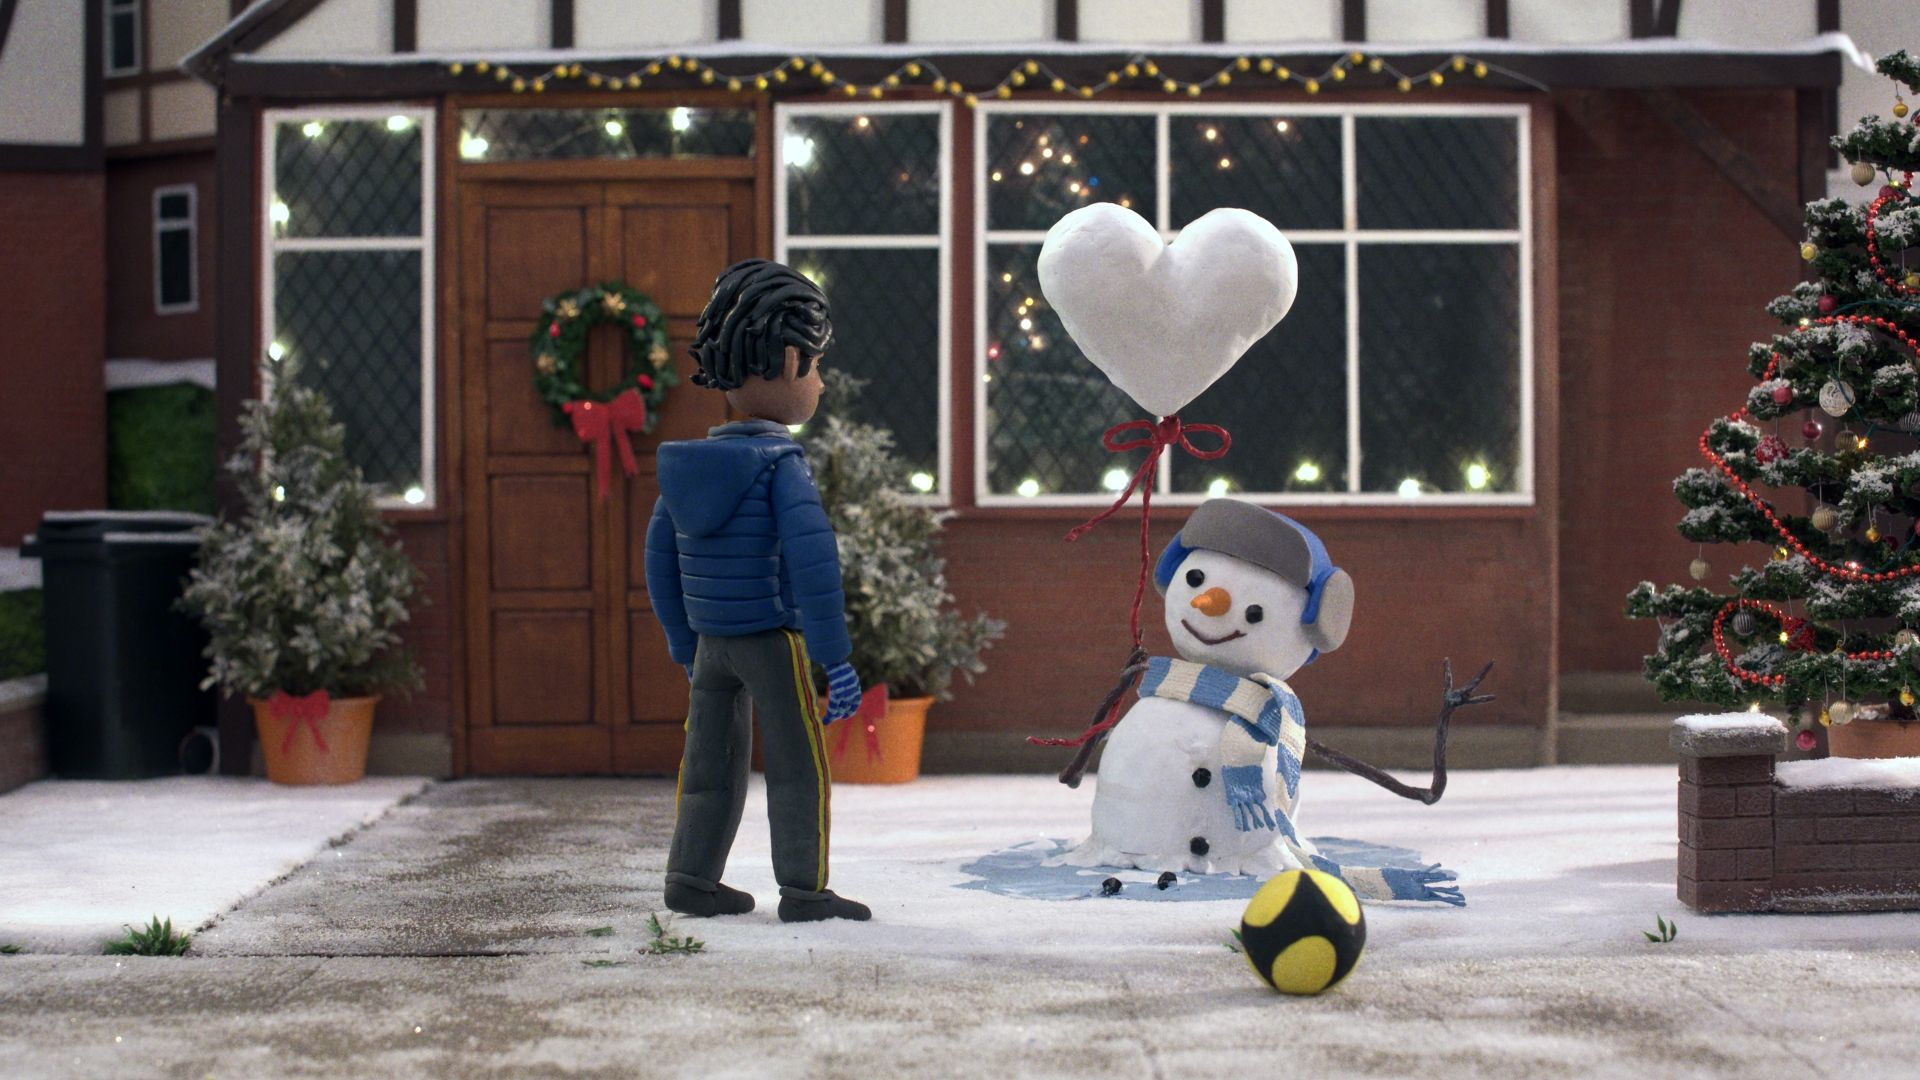 John Lewis Christmas 2021 The John Lewis Christmas Advert Is Finally Here